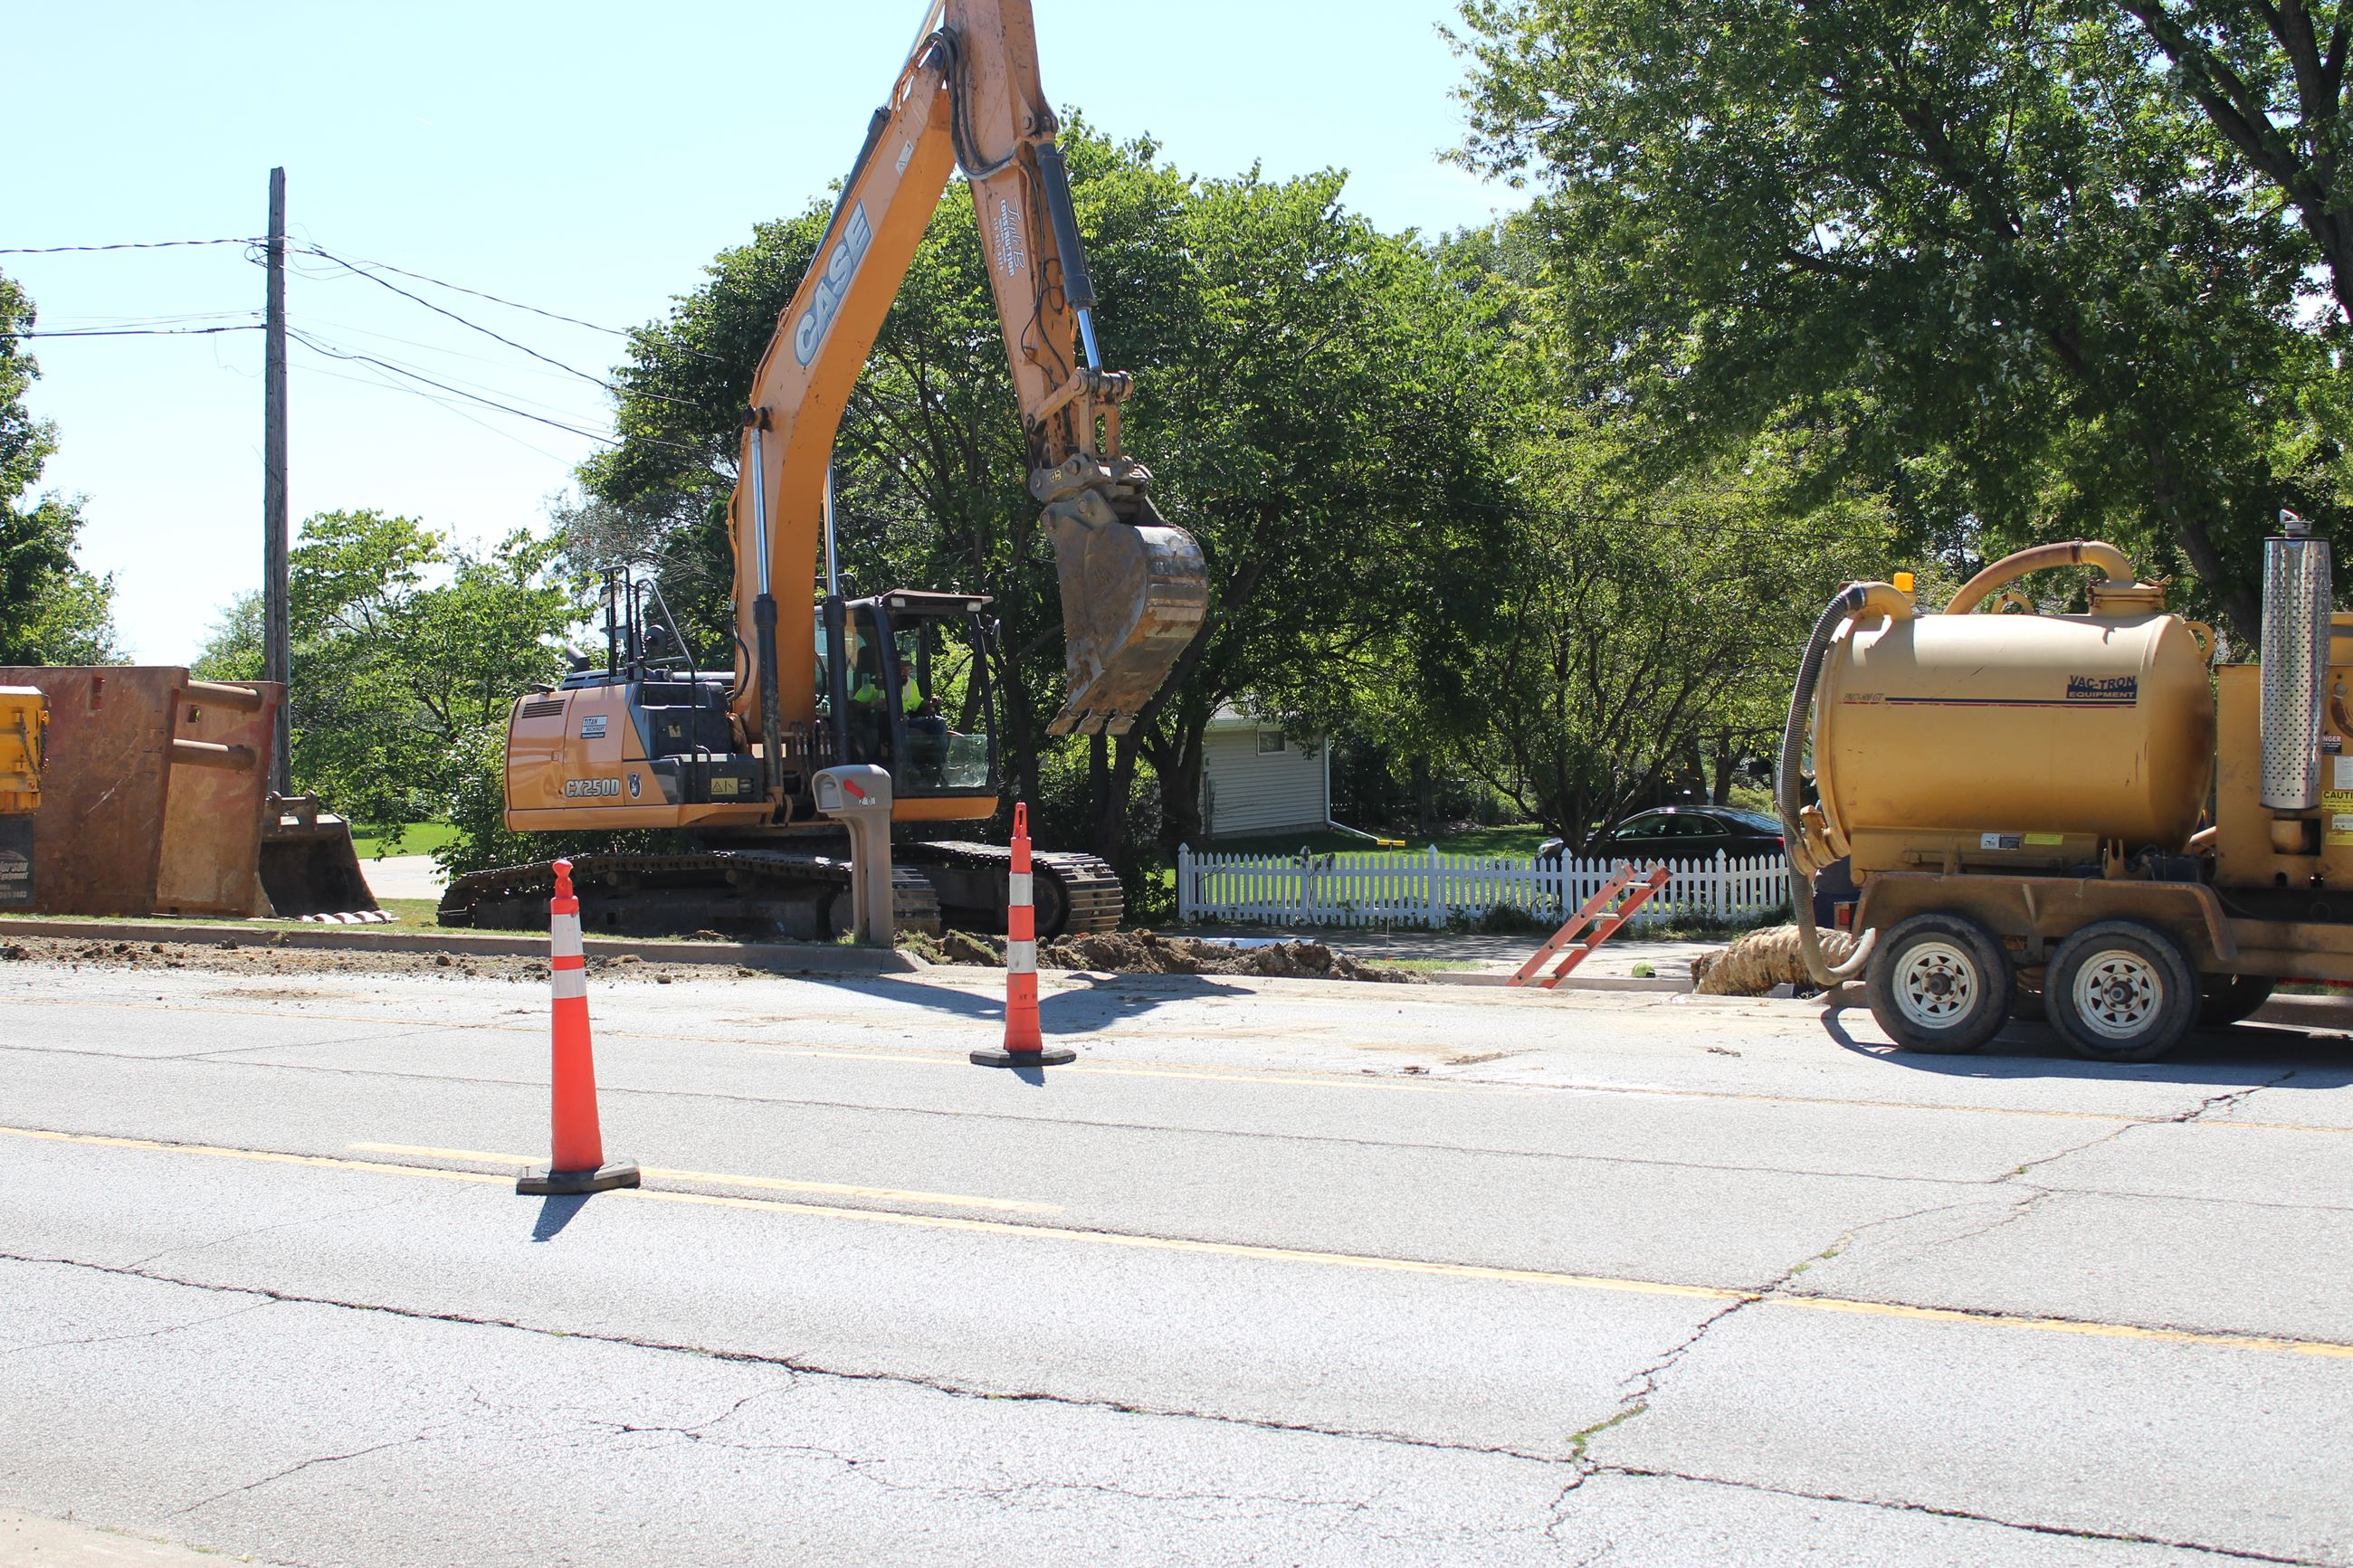 082020 Houser Street Sewer Repair 002 (JPG)